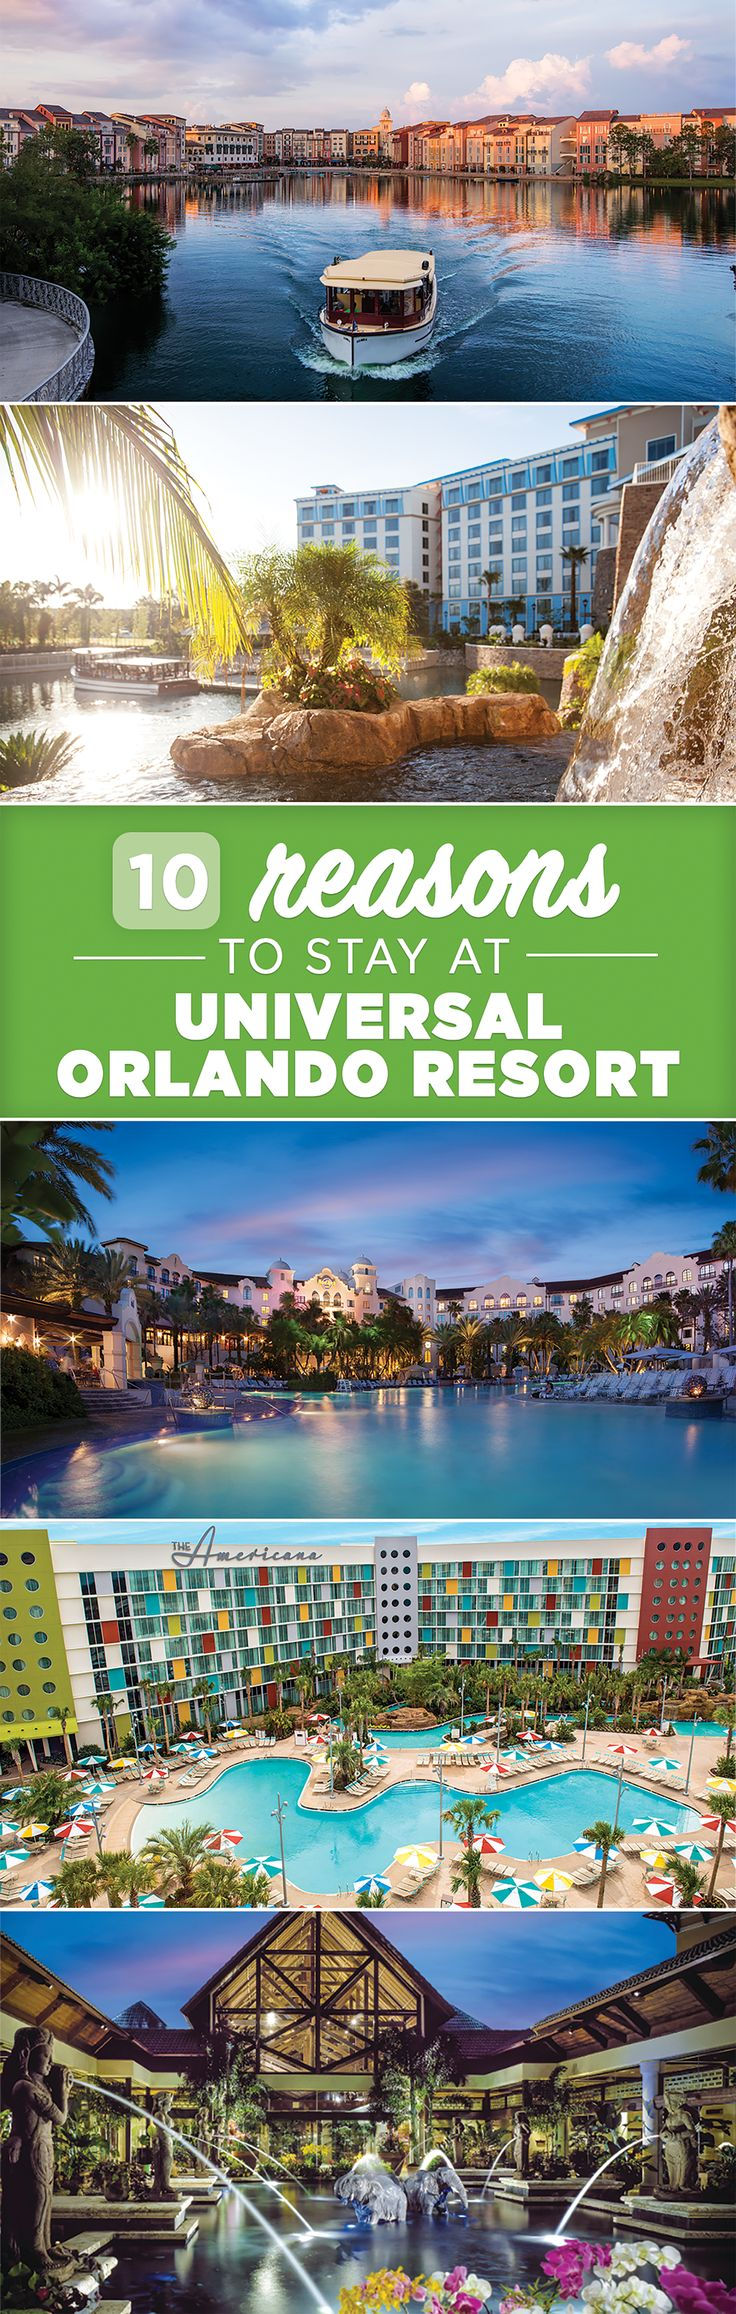 42 best Food and Dining images on Pinterest | Universal orlando ...